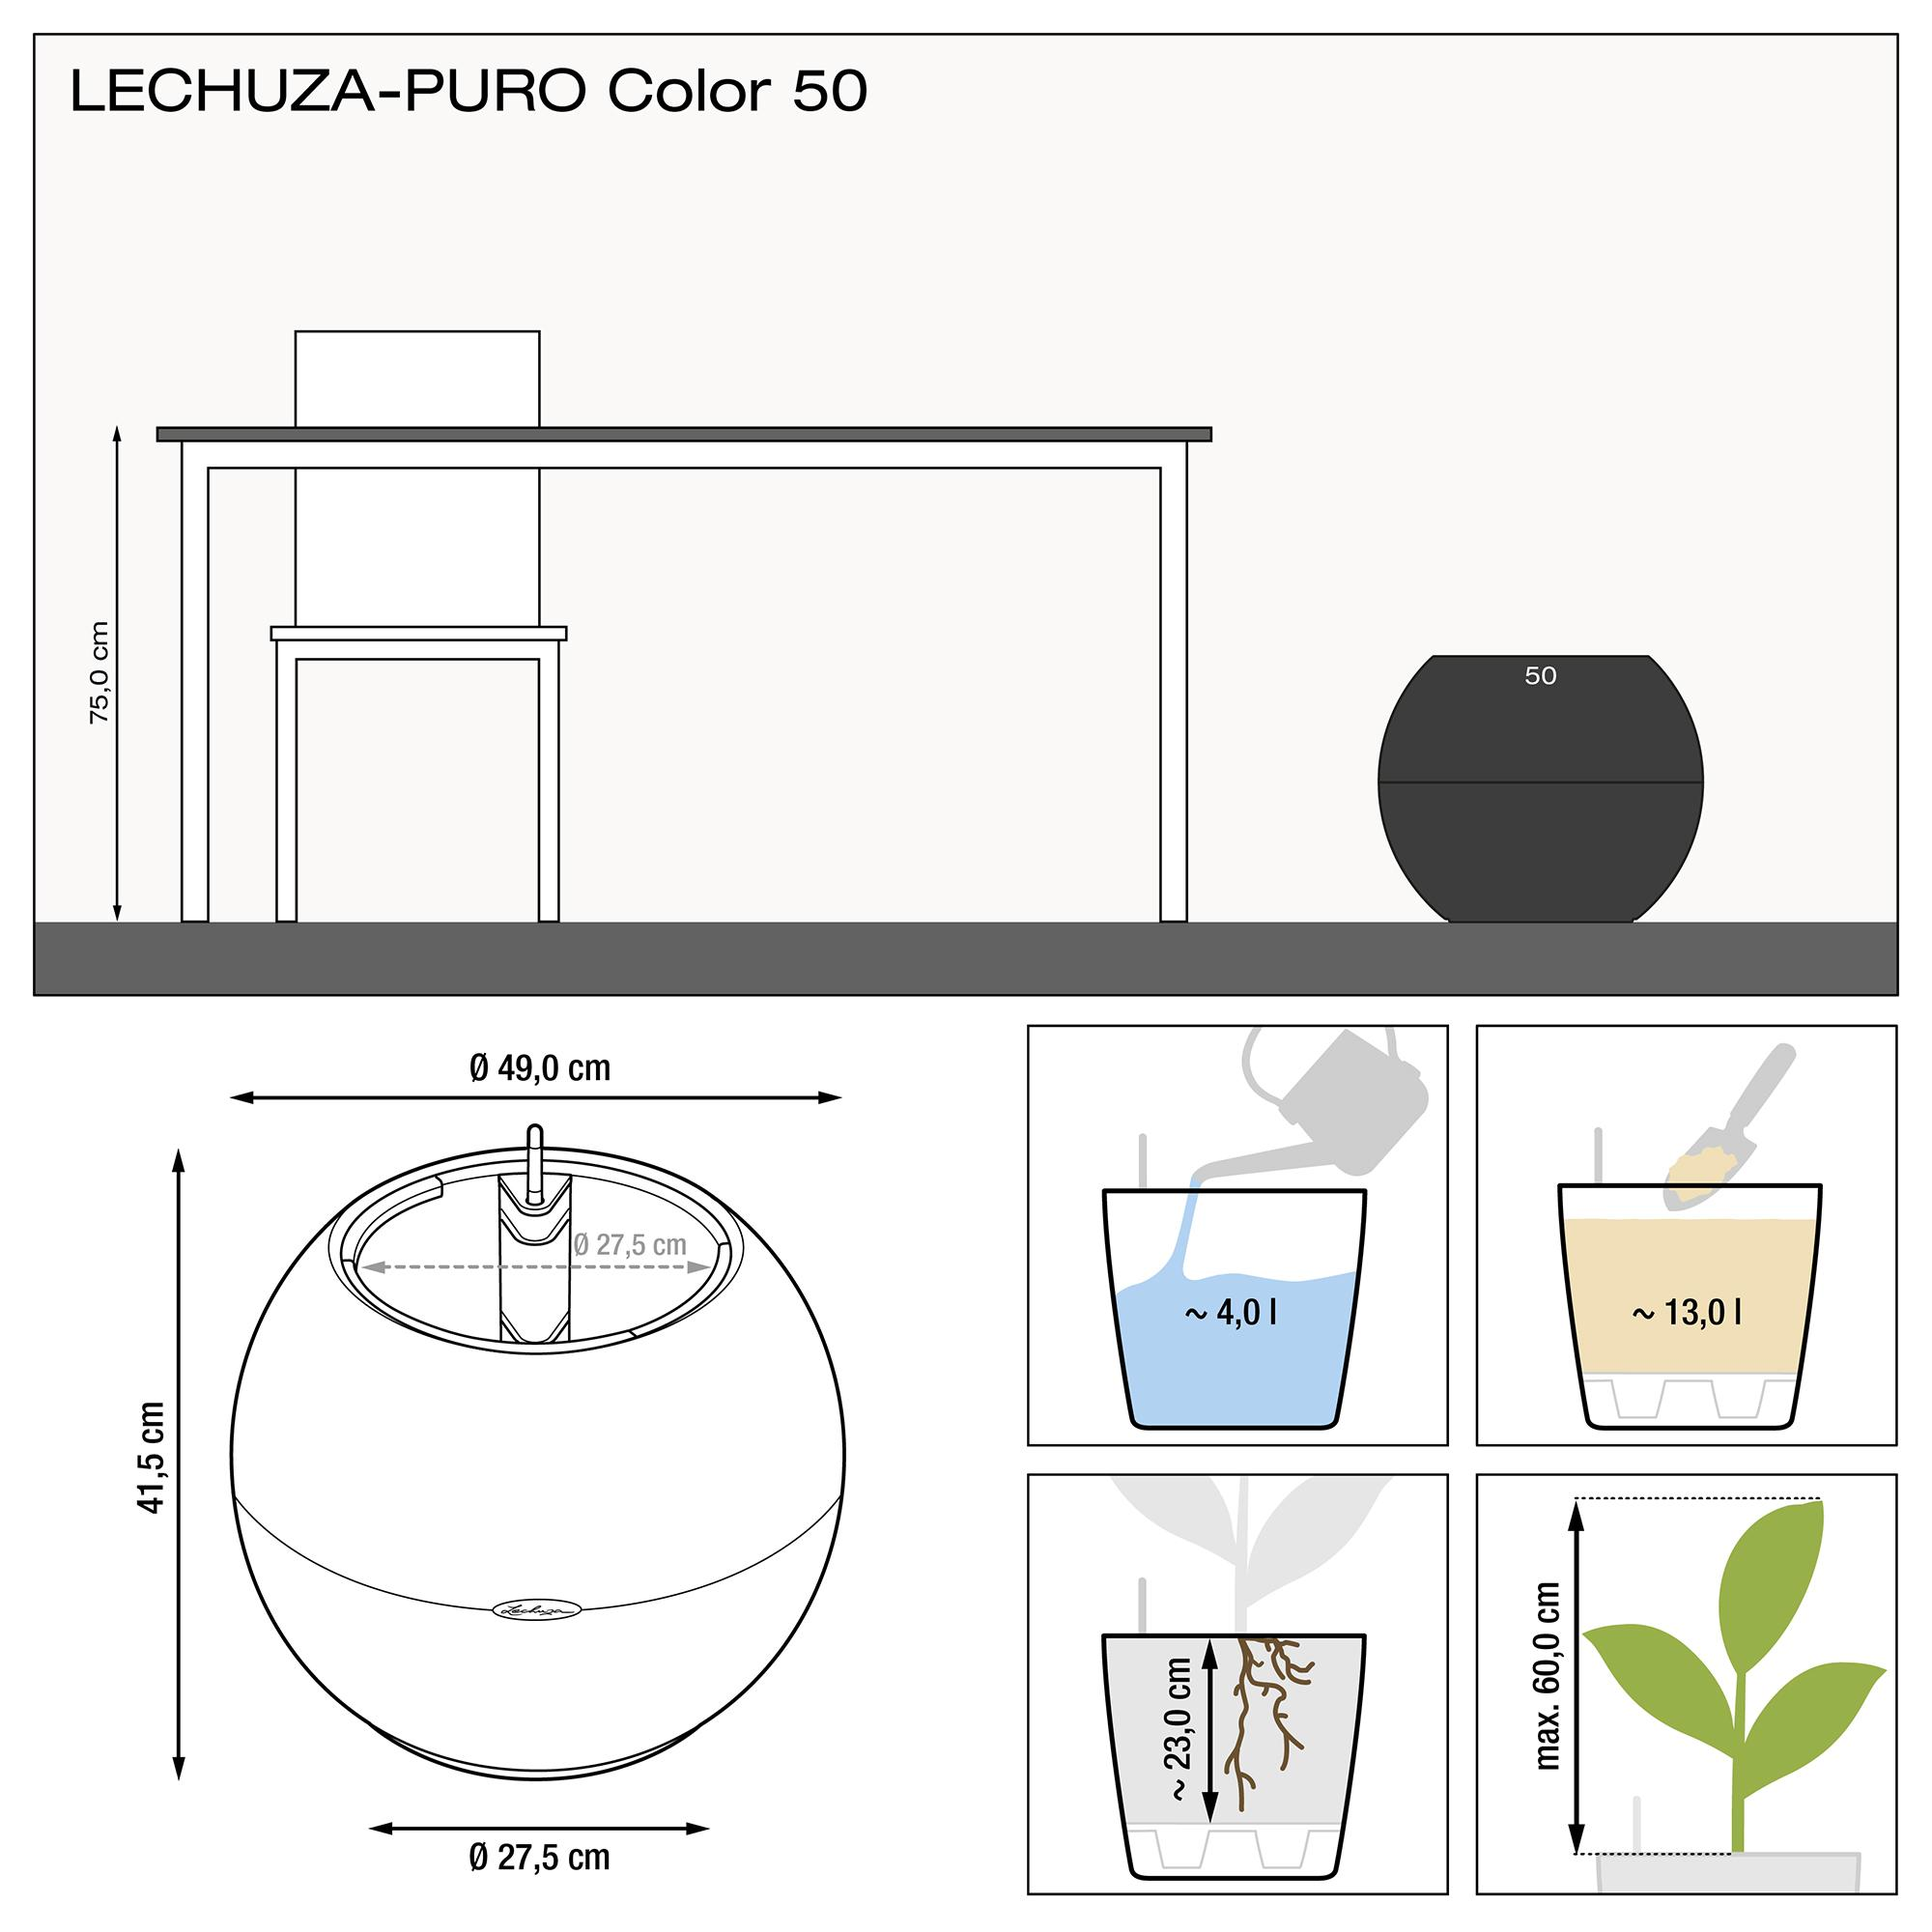 le_puro-color50_product_addi_nz